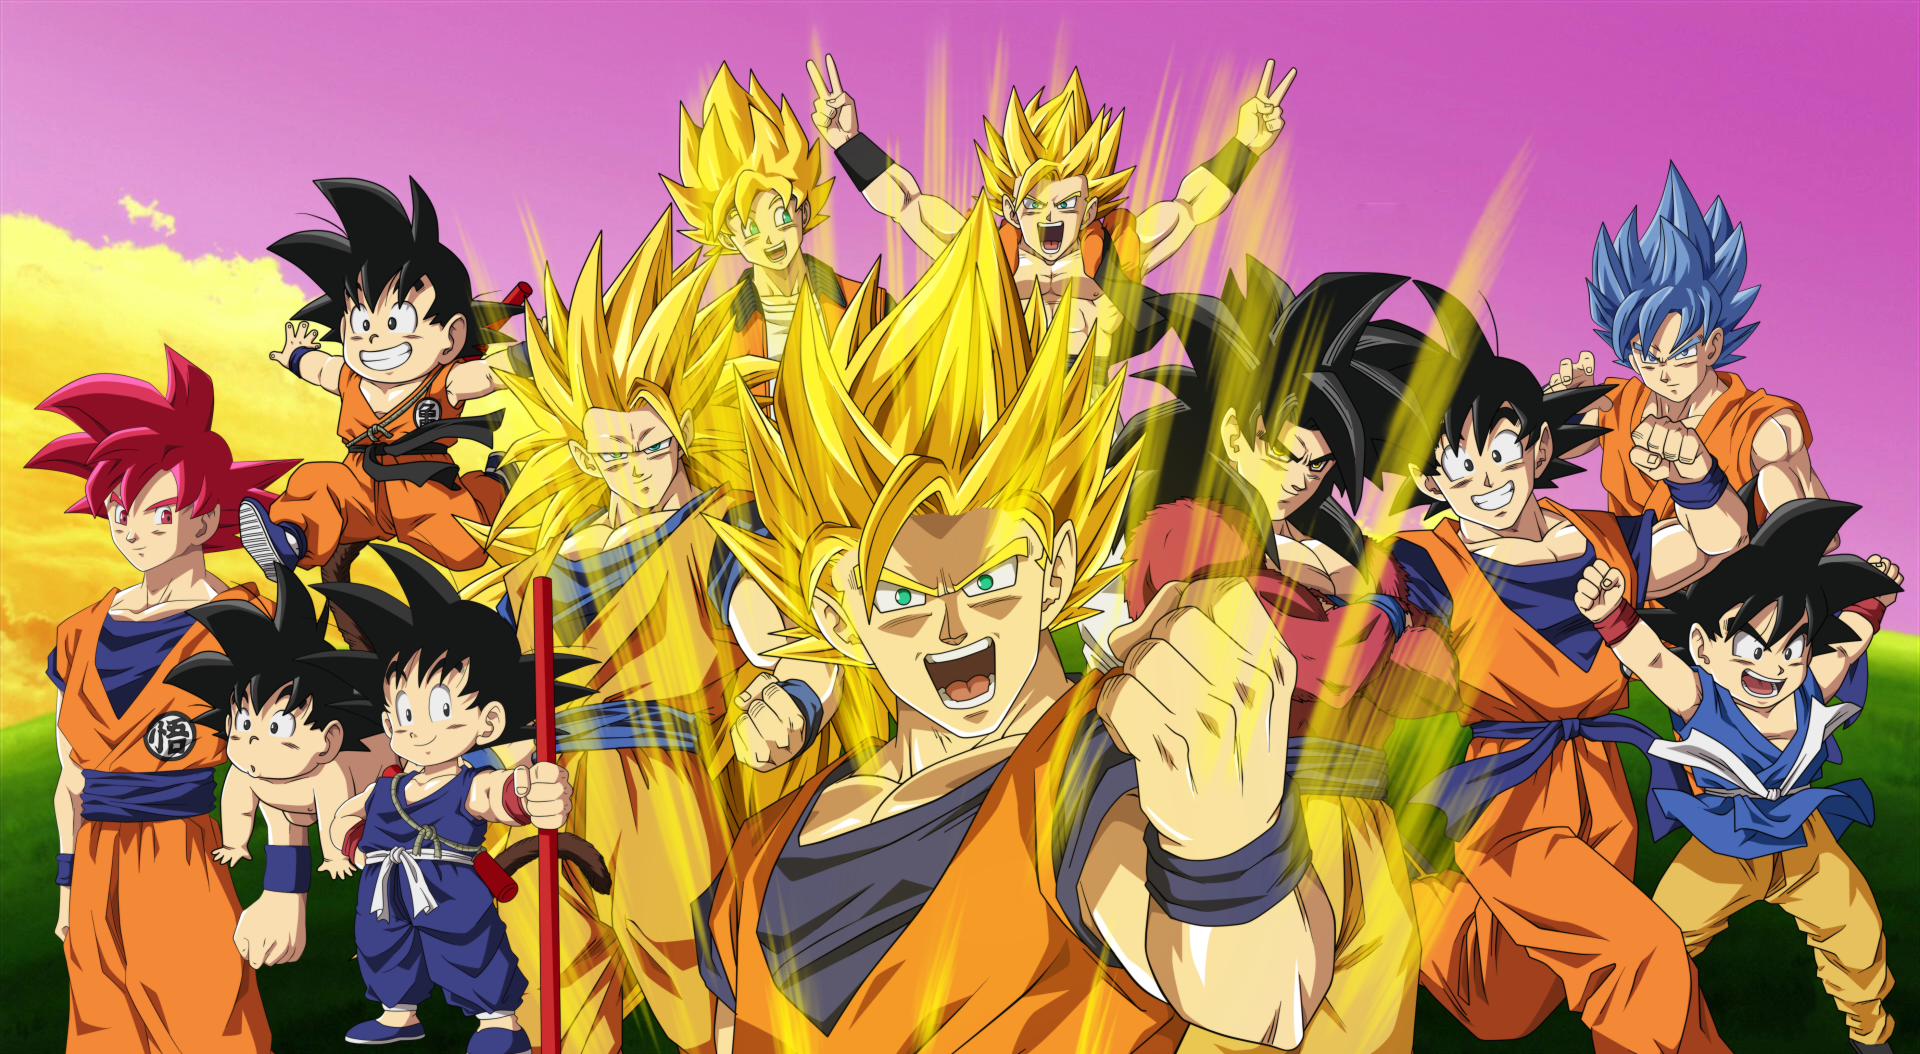 Anime - Dragon Ball Z  Super Saiyan Goku Dragon Ball Anime Wallpaper